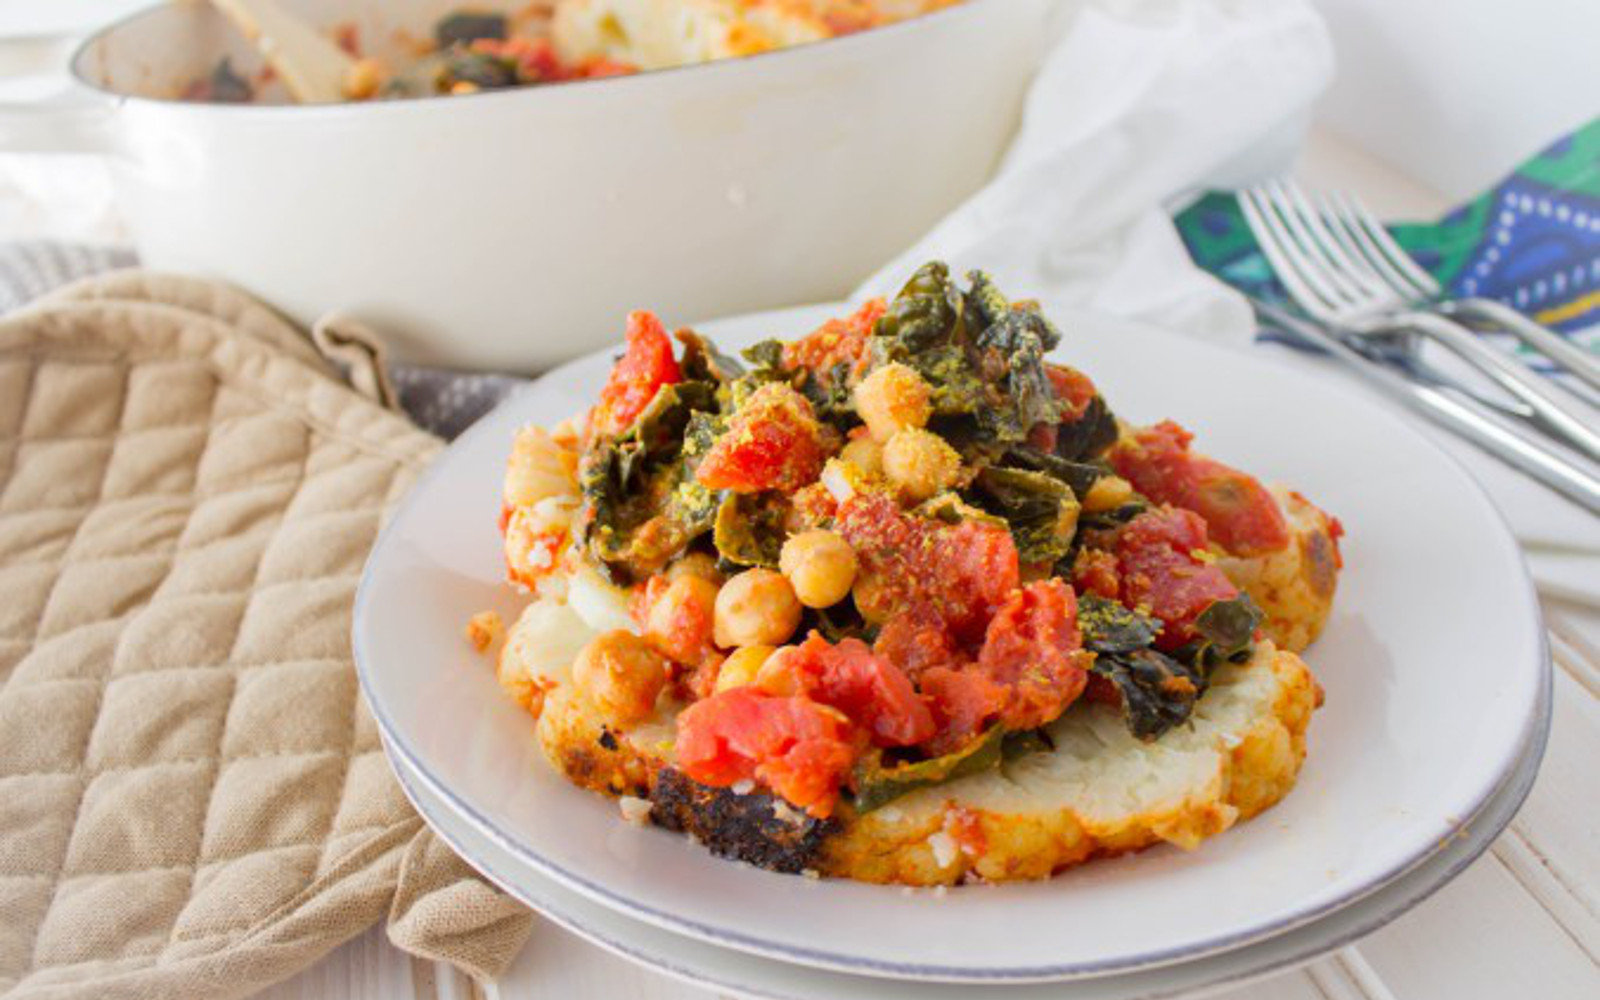 Braised Cauliflower With Chickpeas, Tomato, and Kale